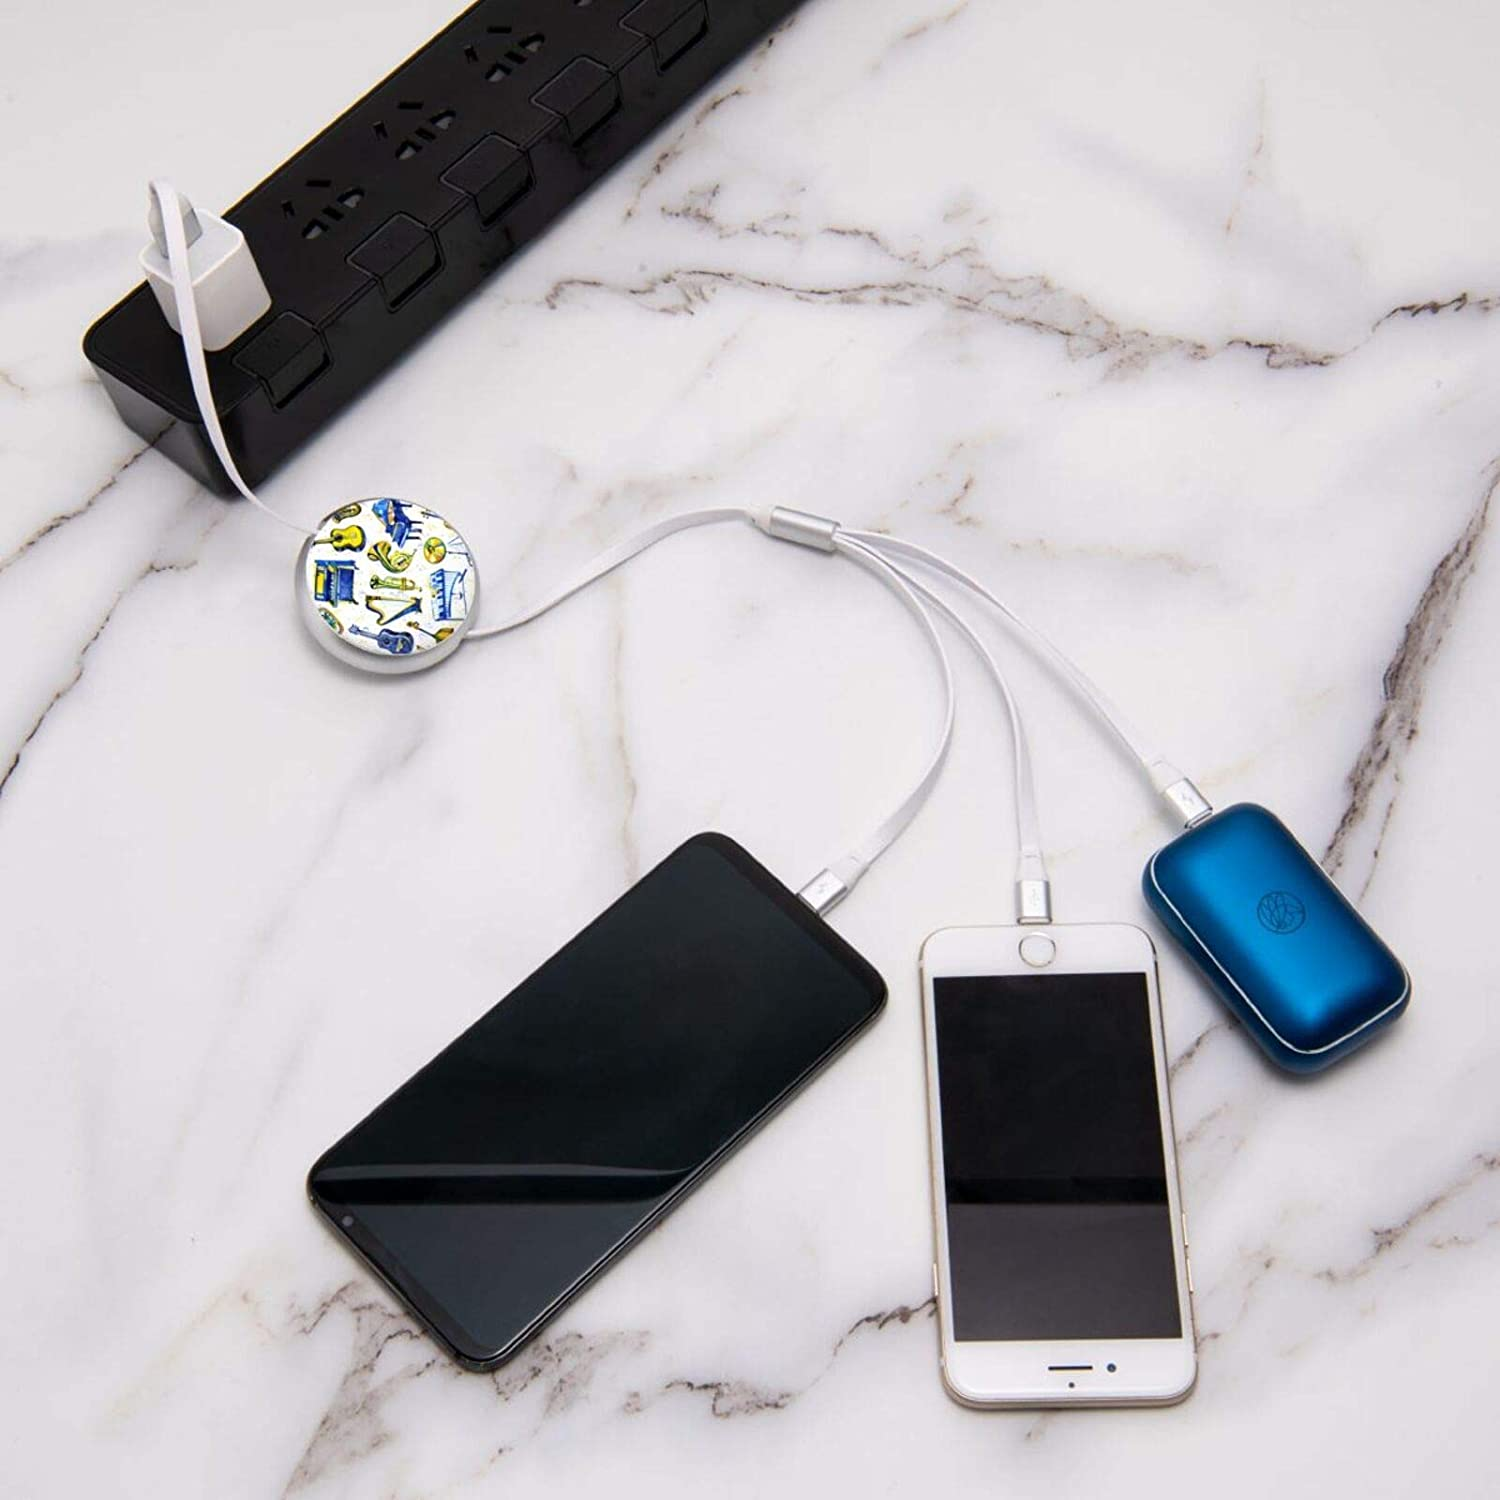 3-in-1 Retractable USB Charging Cable All Kinds of Musical Instruments Fast Charging Customized Charger Cord Compatible with Cell Phones Tablets Universal Use